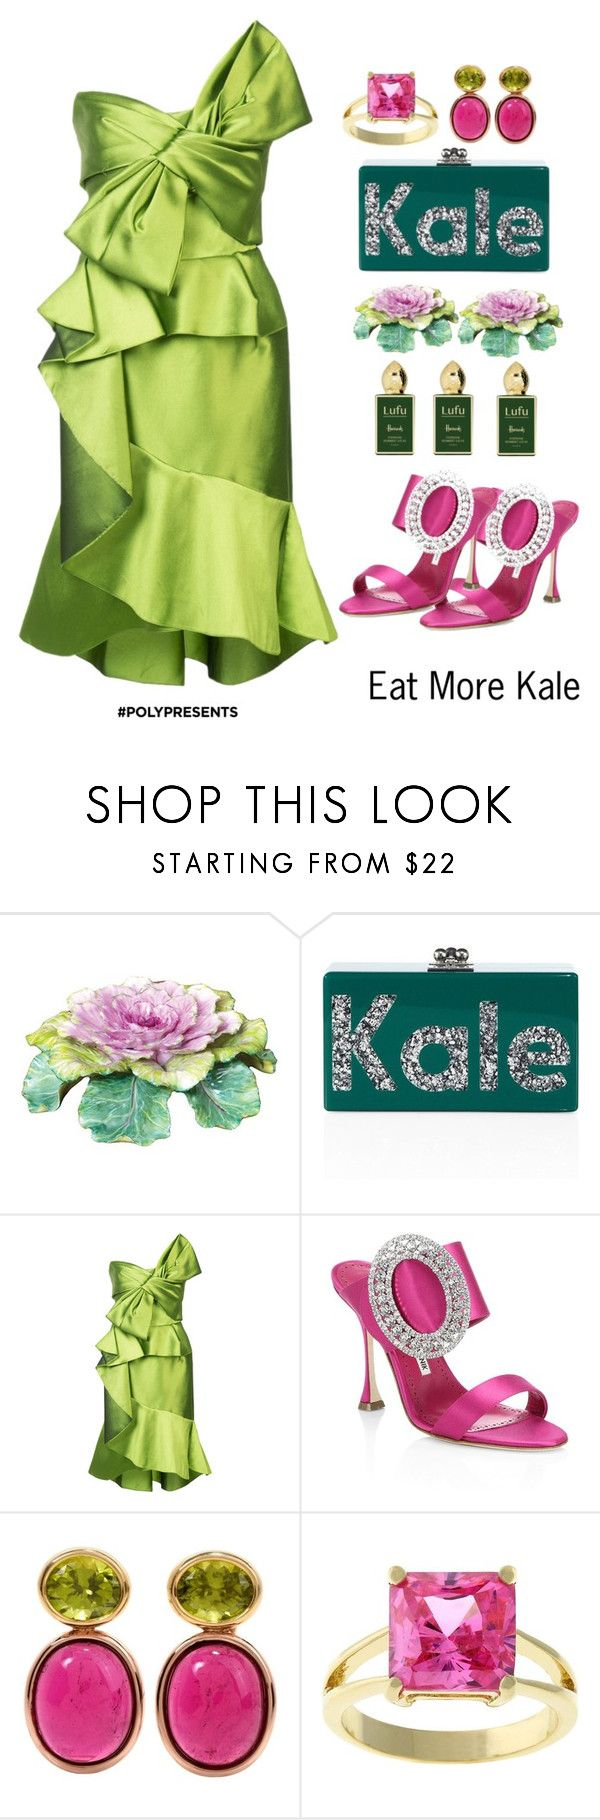 """#PolyPresents: New Year's Resolutions"" by shamrockclover ❤ liked on Polyvore featuring Kale, Edie Parker, Marchesa, Manolo Blahnik, Kate Bissett, Stéphane Humbert Lucas, contestentry and polyPresents"